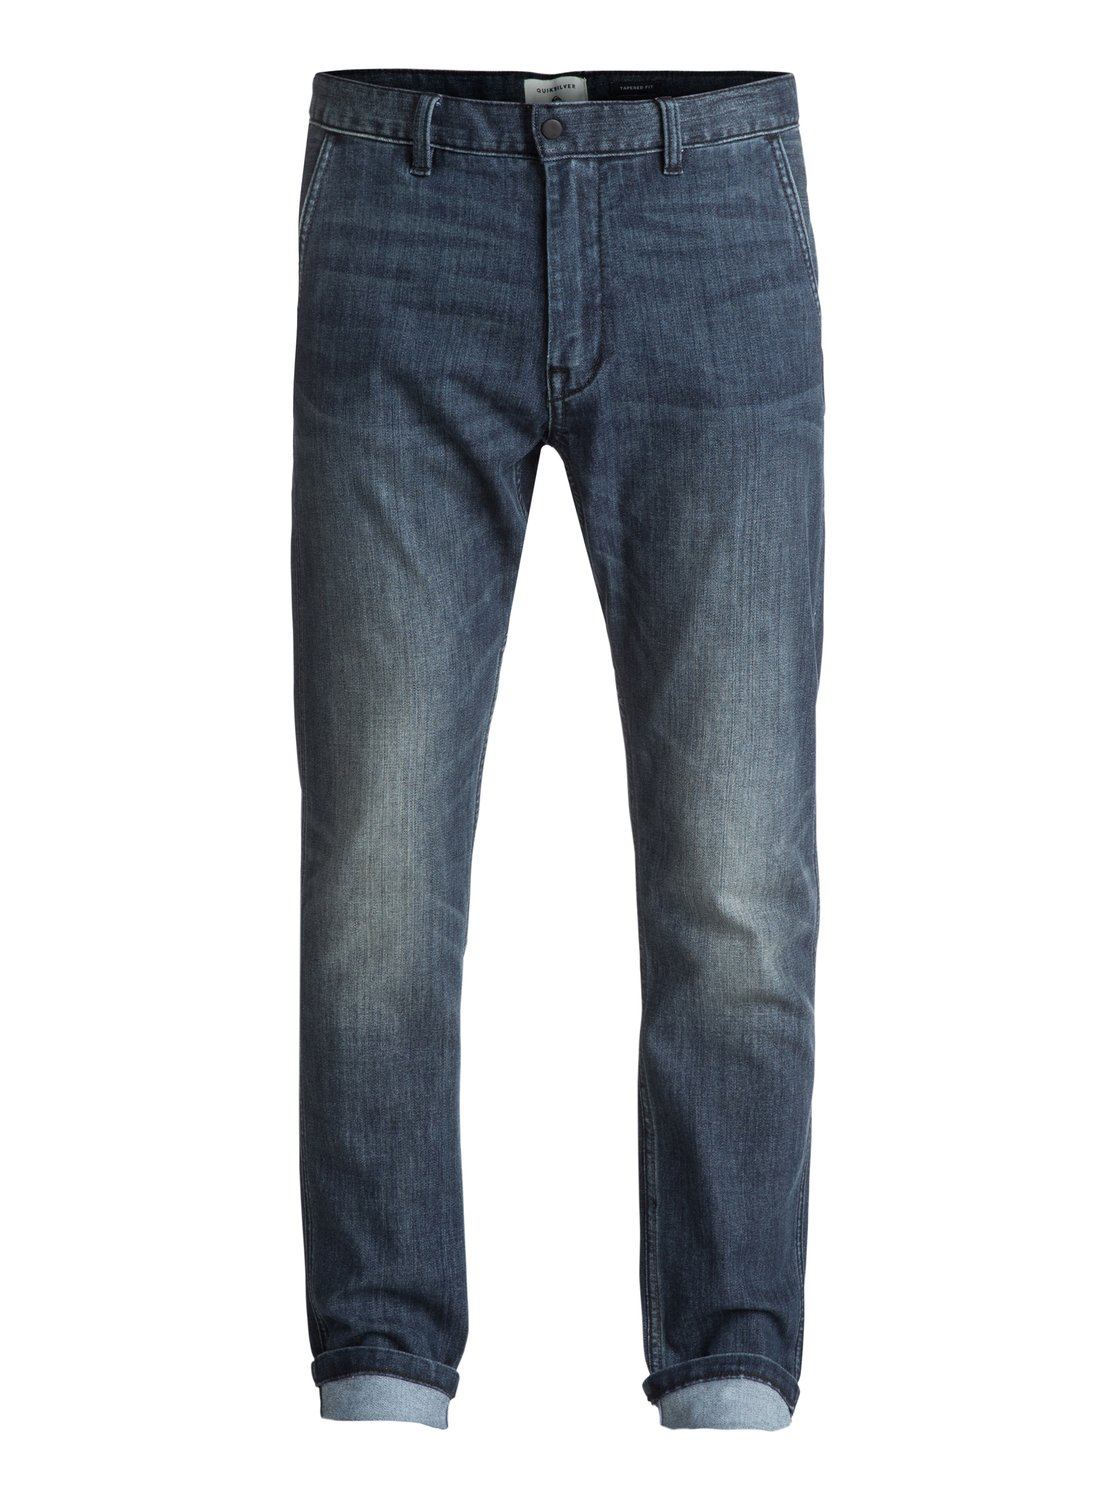 Athletic Coolmax - jean coupe tapered pour homme - quiksilver